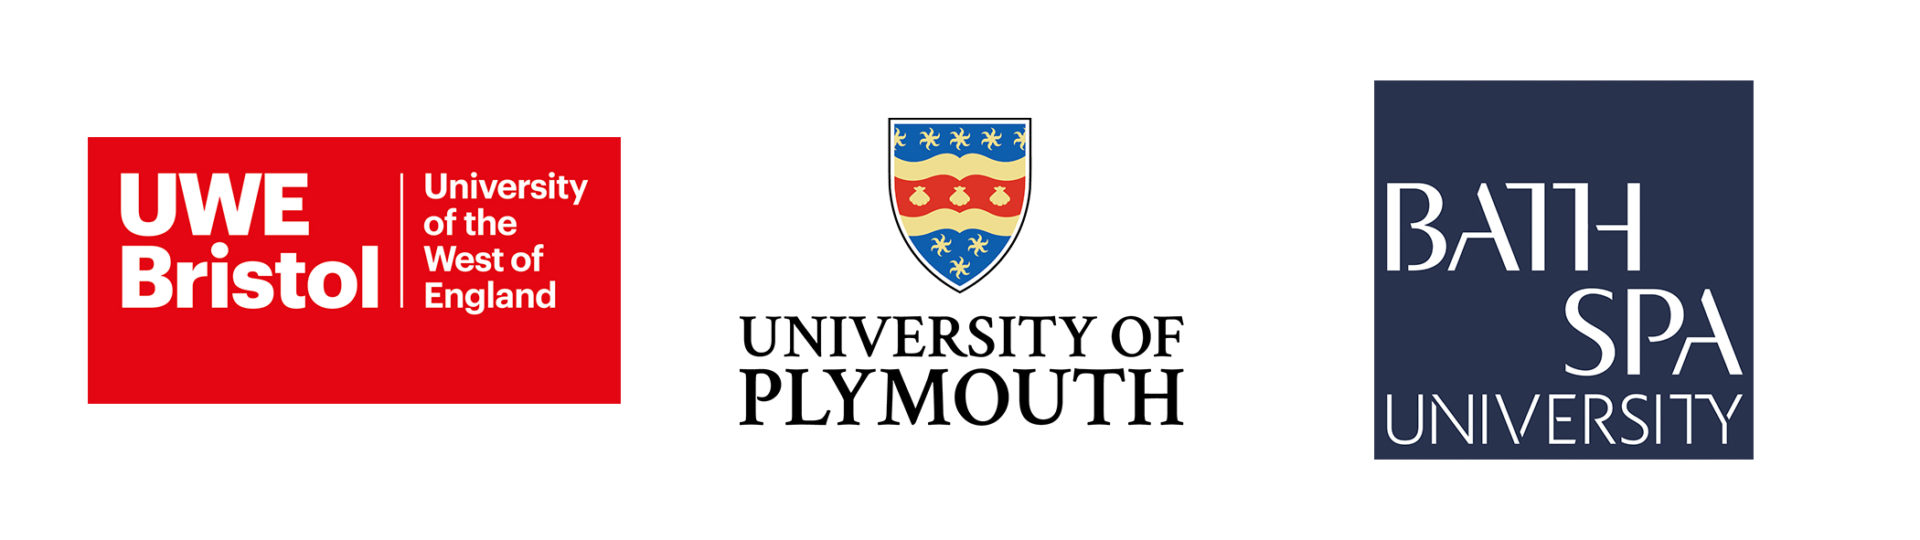 University of the West of England, University of Plymouth and Bath Spa University logos